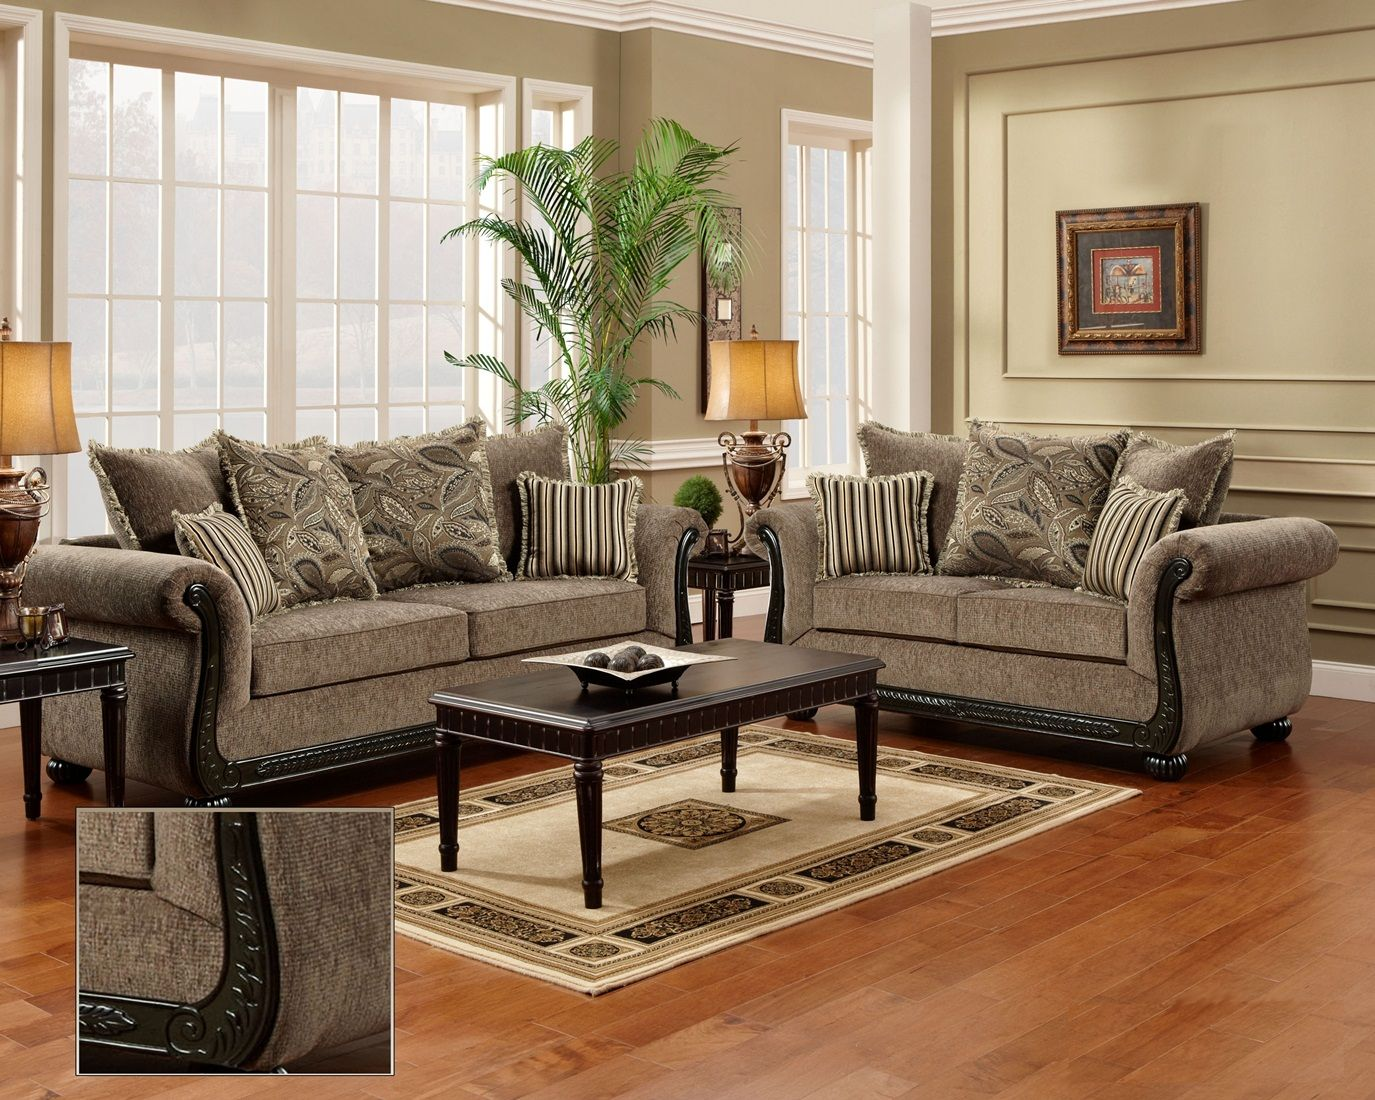 Lovely Nice Wood Trim Sofa , Good Wood Trim Sofa 25 For Living Room Sofa Ideas With